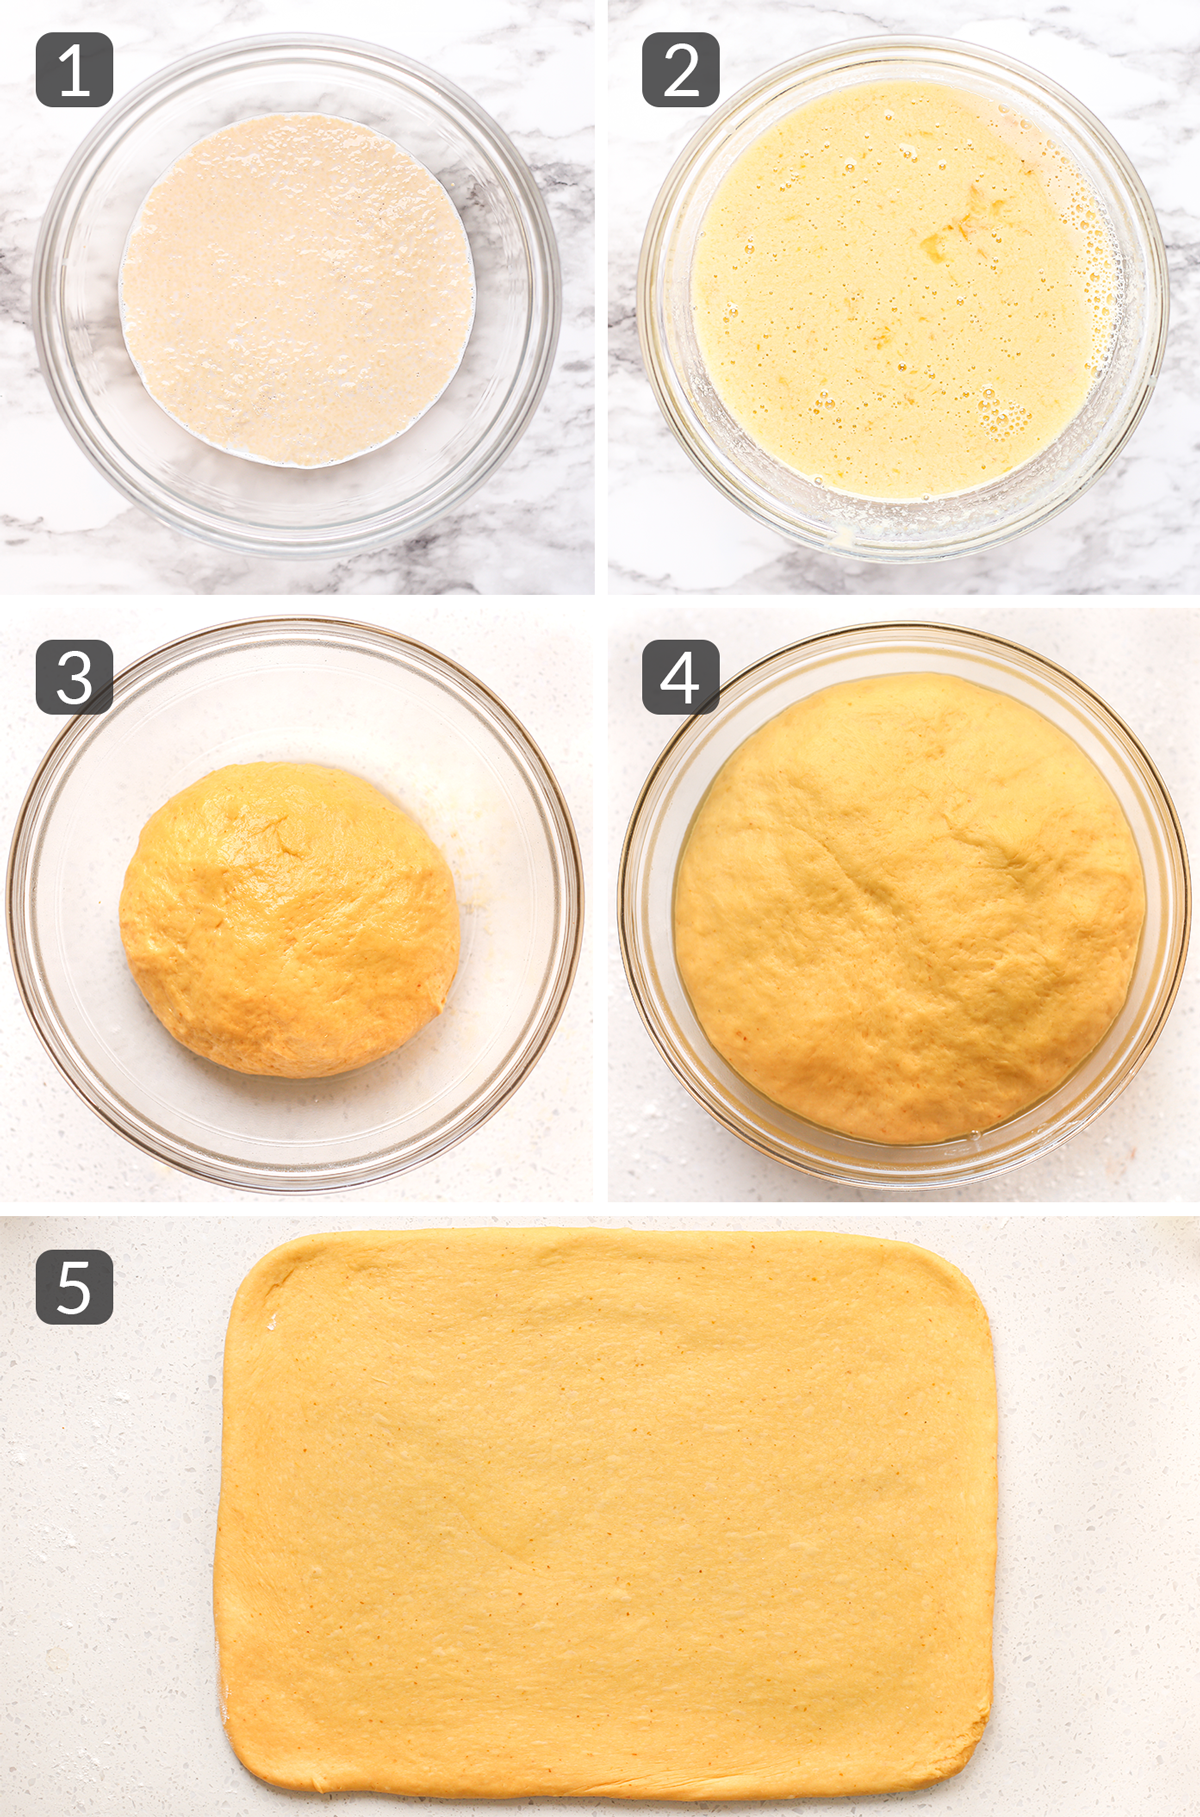 step photos showing how to make dough for cinnamon rolls